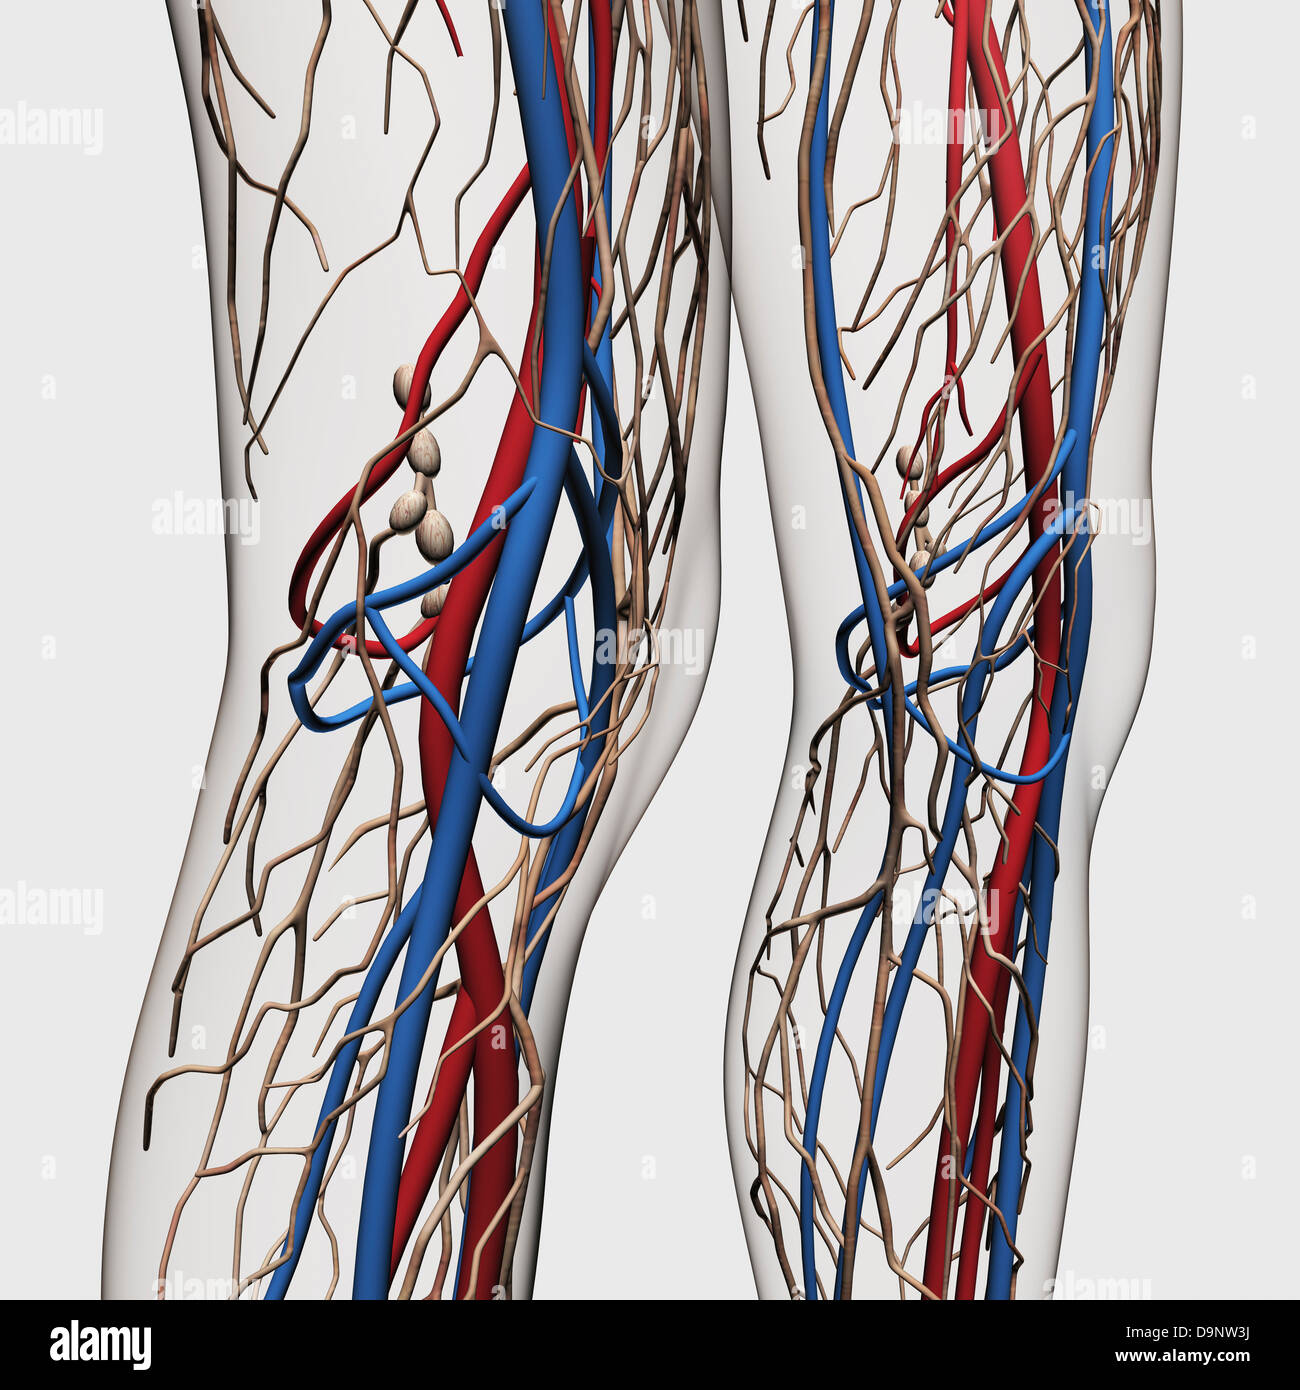 Peroneal Artery Stock Photos Peroneal Artery Stock Images Alamy